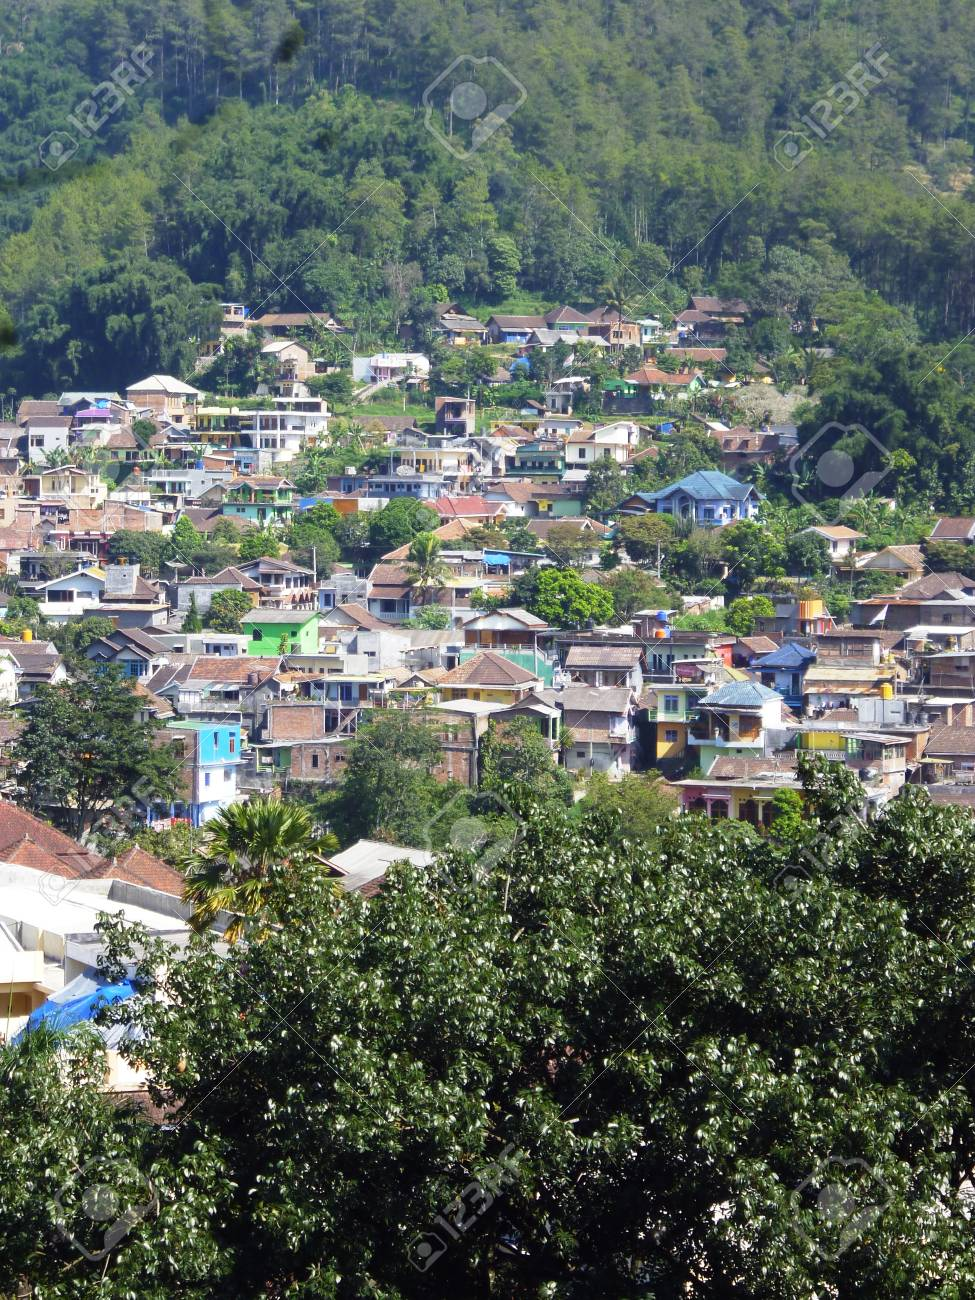 Residential Areas In Batu Hill Malang East Java Indonesia Stock Photo Picture And Royalty Free Image Image 28604012